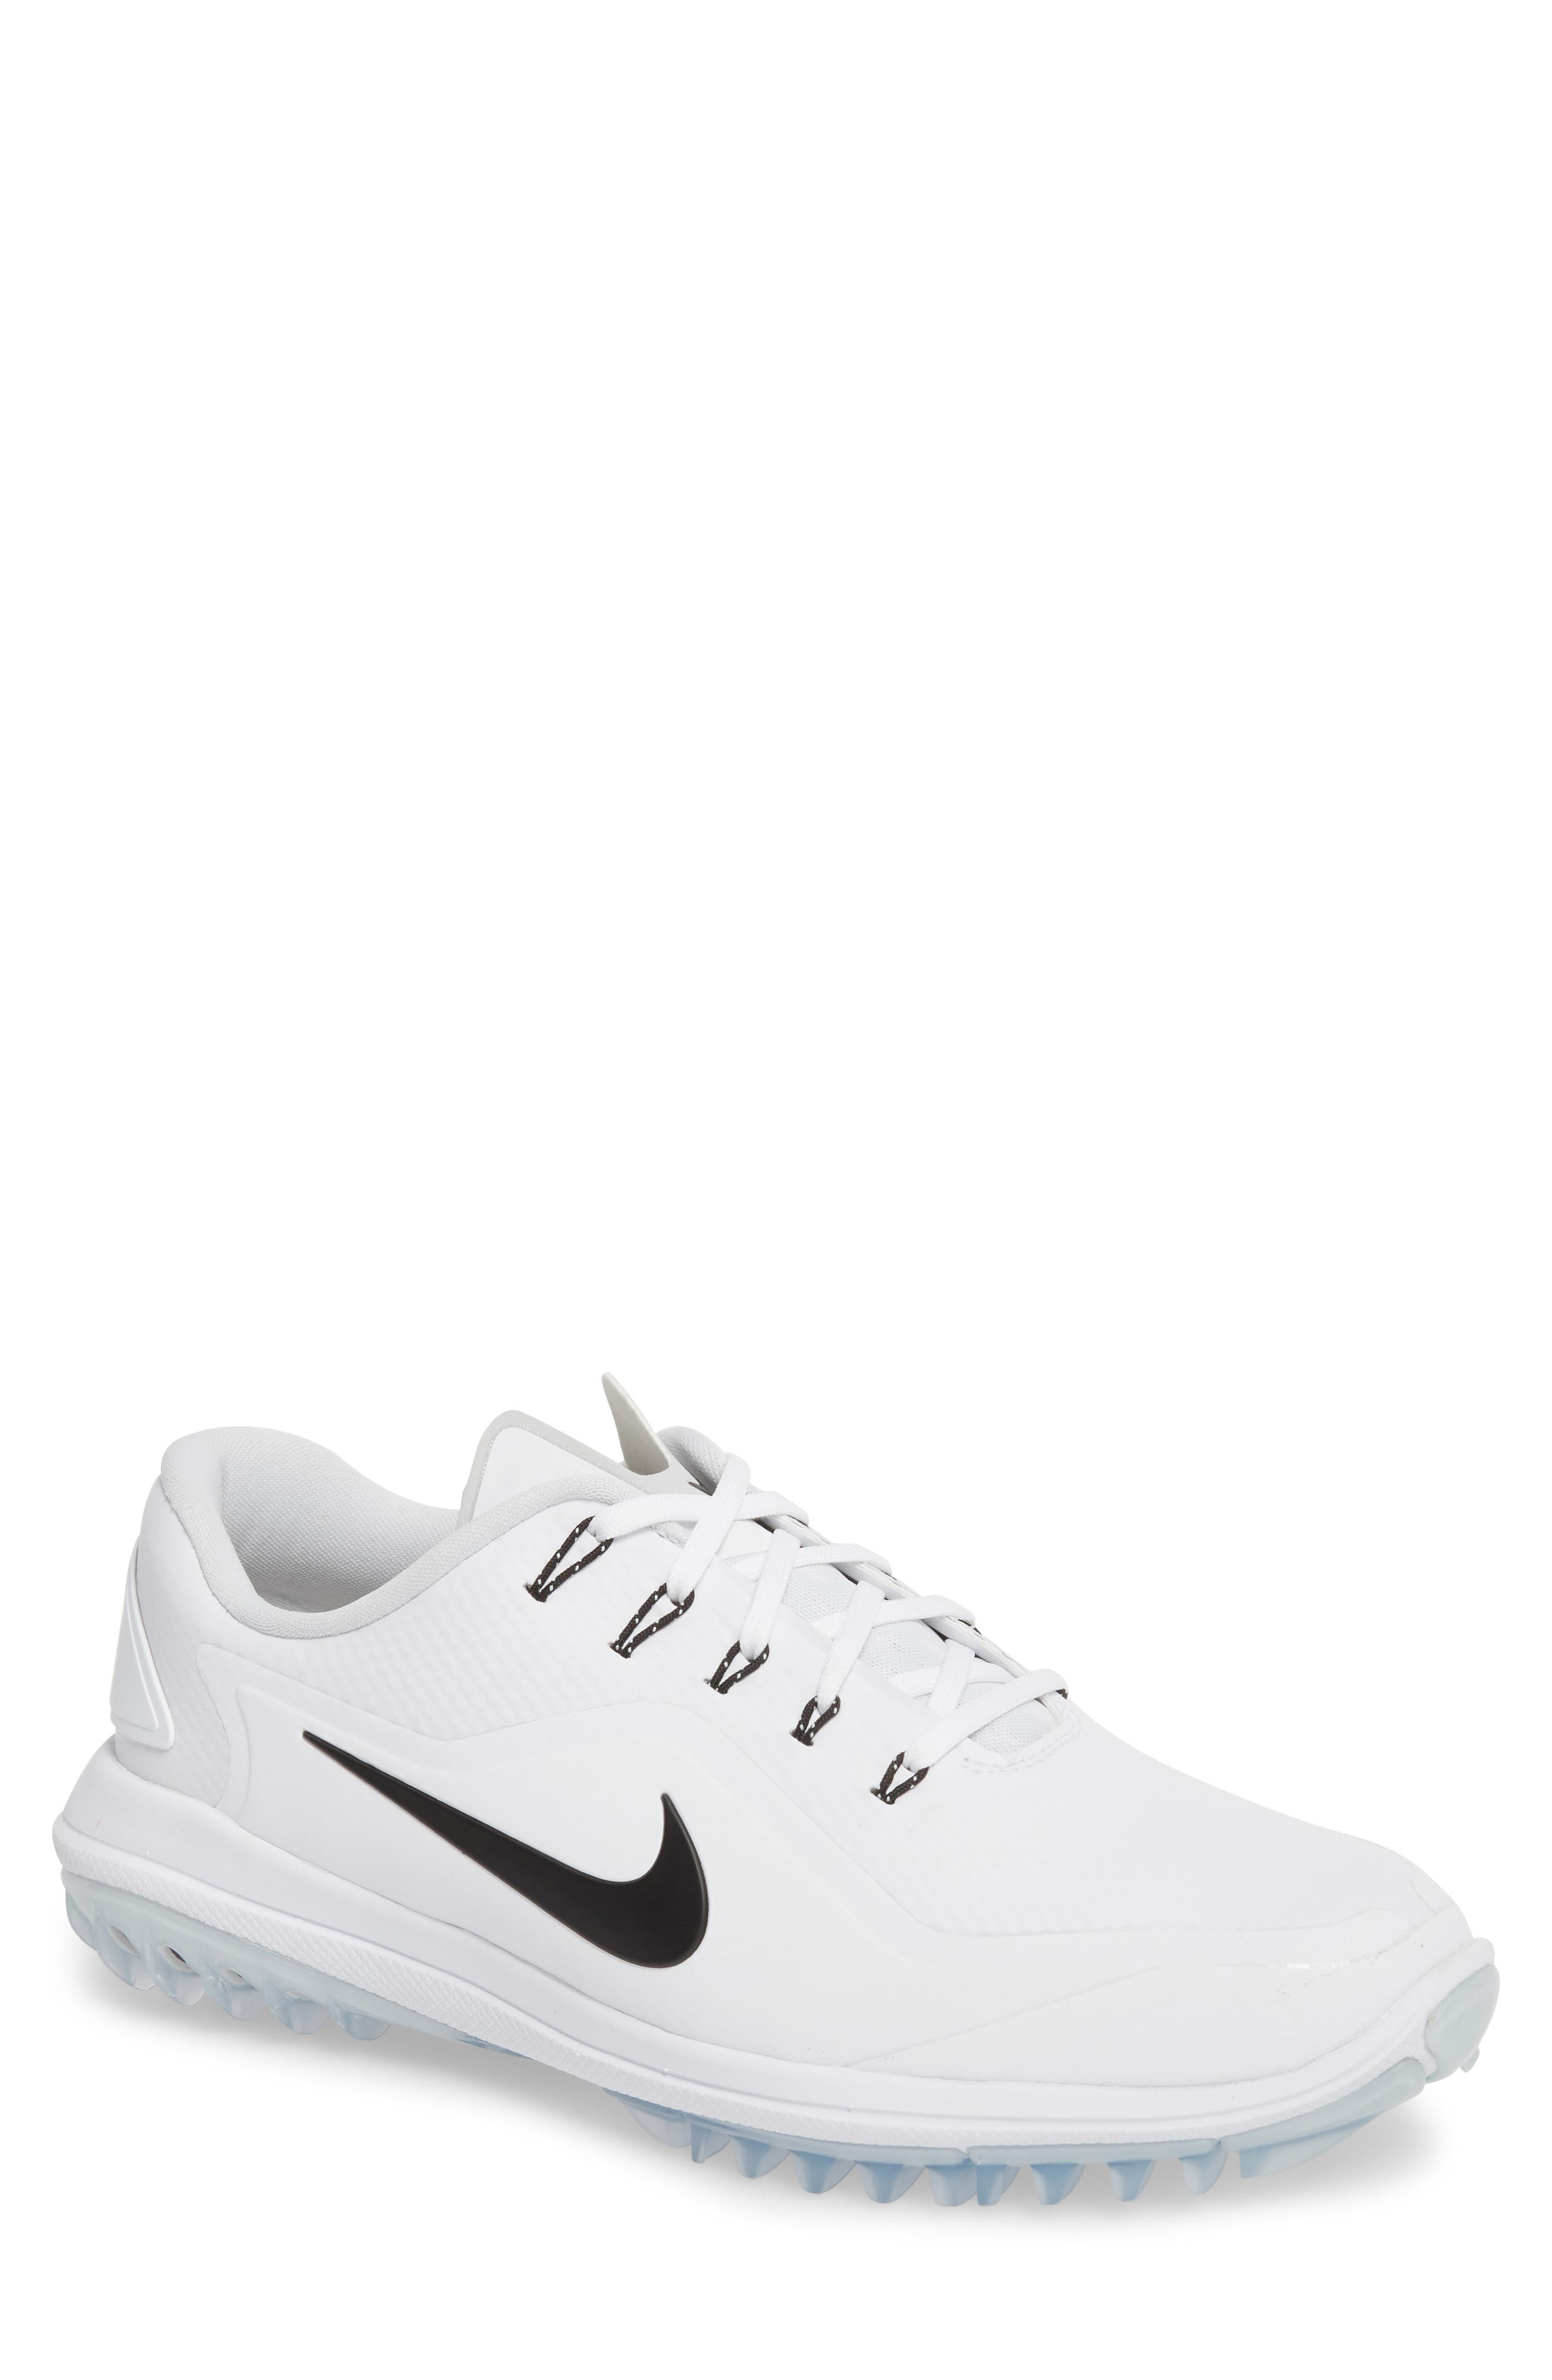 Nike Lunar Control Vapor 2 Waterproof Golf Shoe (Men)